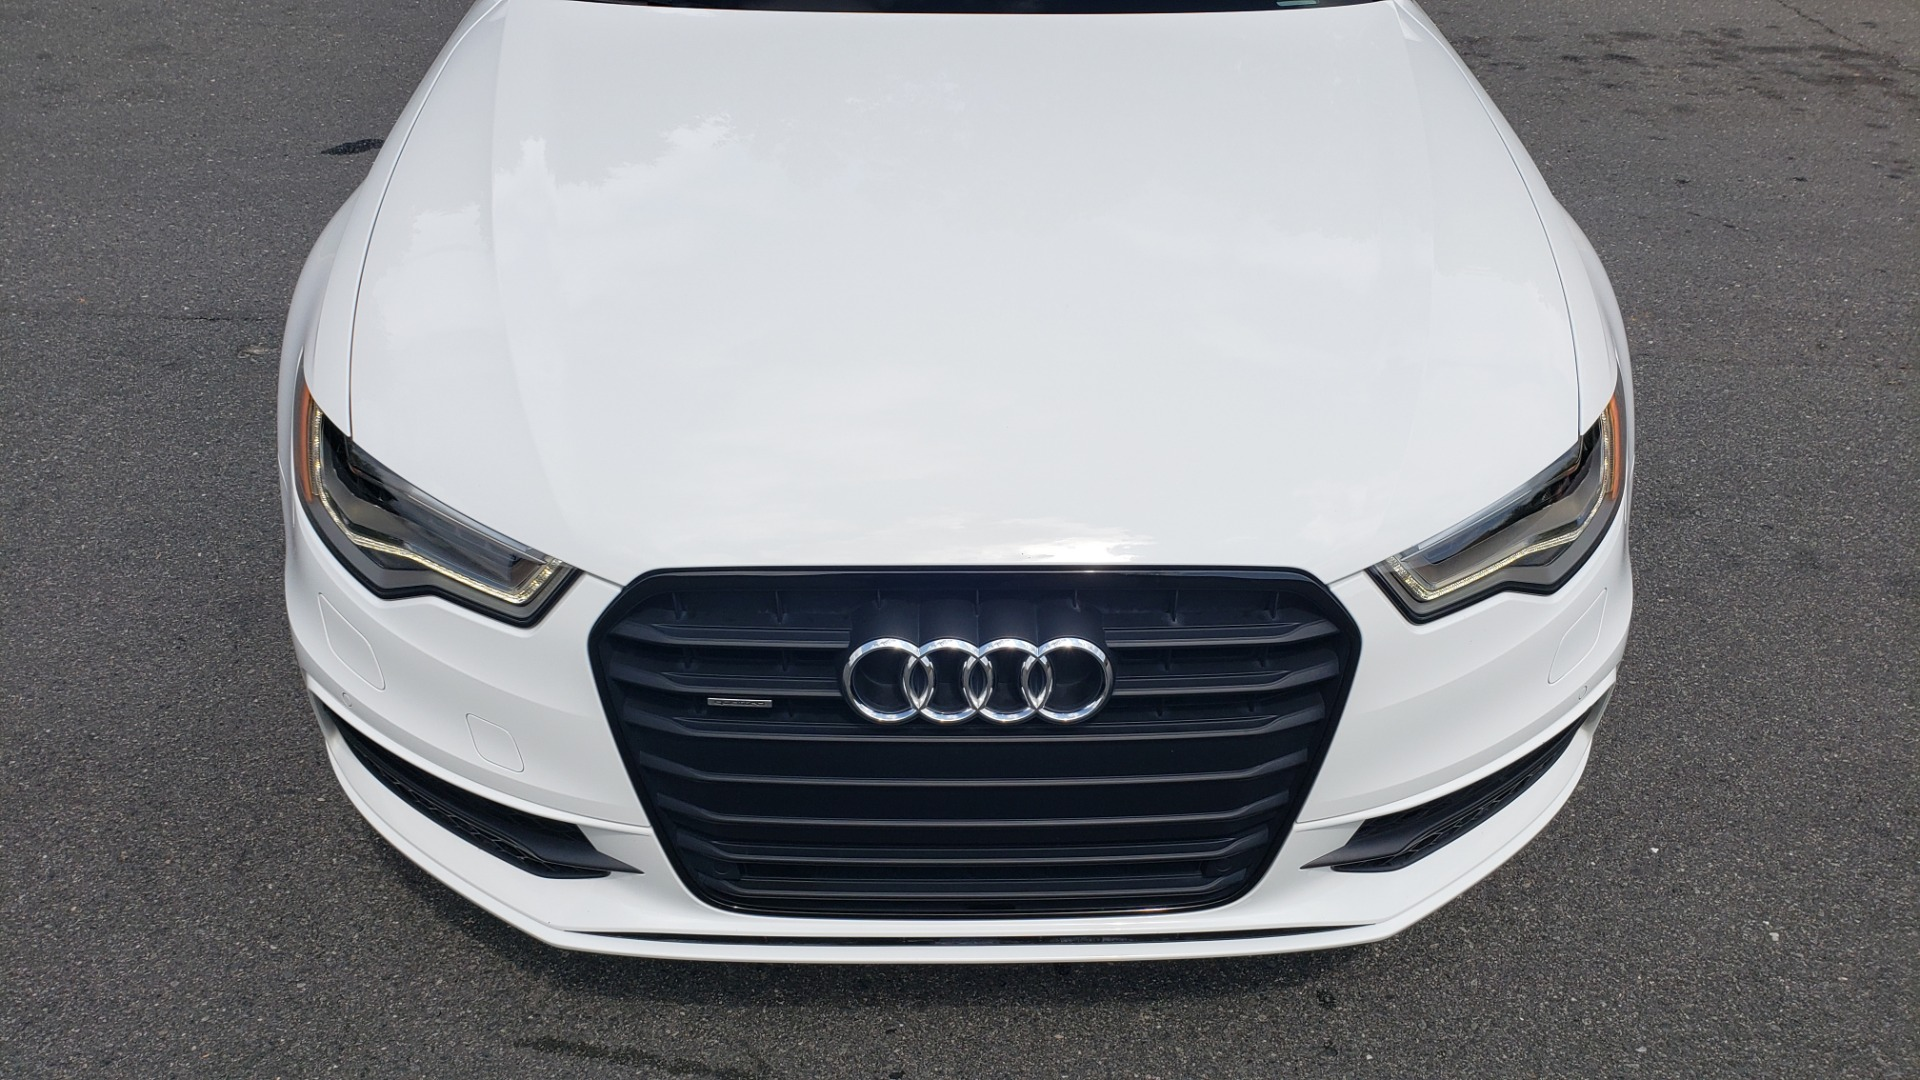 Used 2015 Audi A6 3.0T PRESTIGE / BLACK OPTIC / NAV / BOSE / SUNROOF / REARVIEW for sale Sold at Formula Imports in Charlotte NC 28227 29